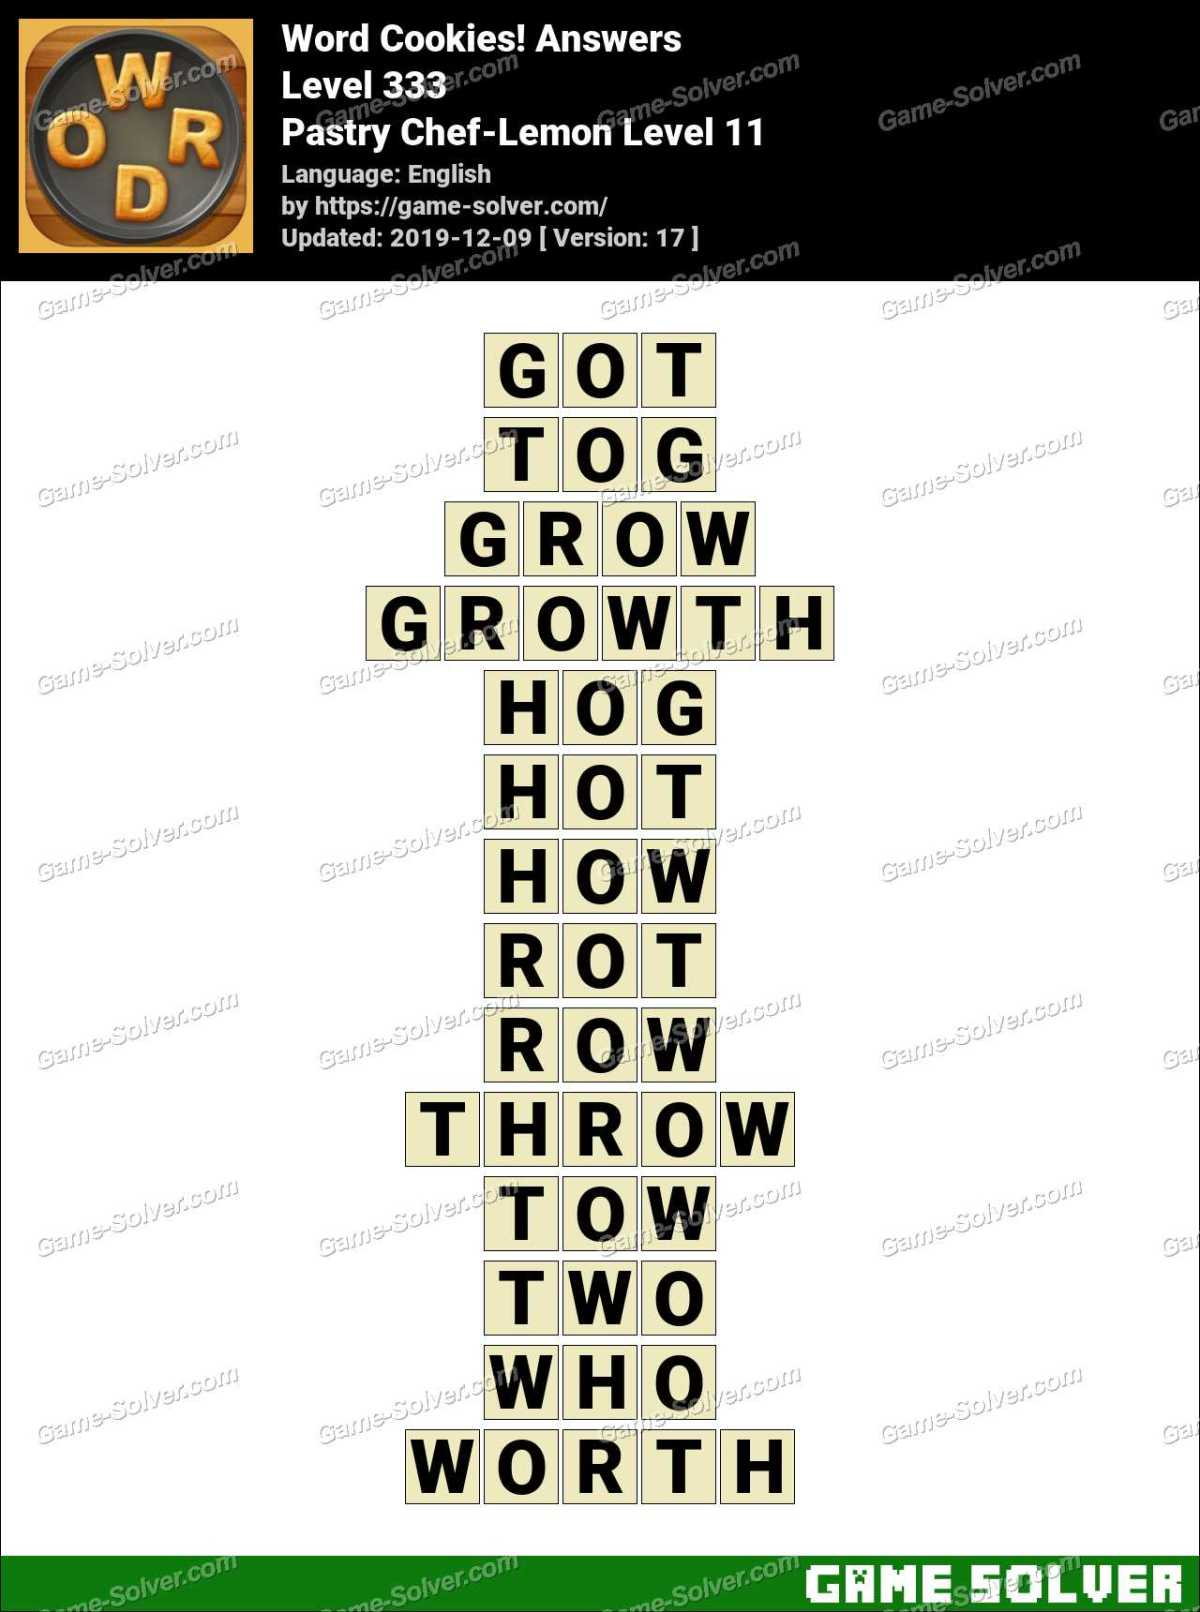 Word Cookies Pastry Chef-Lemon Level 11 Answers